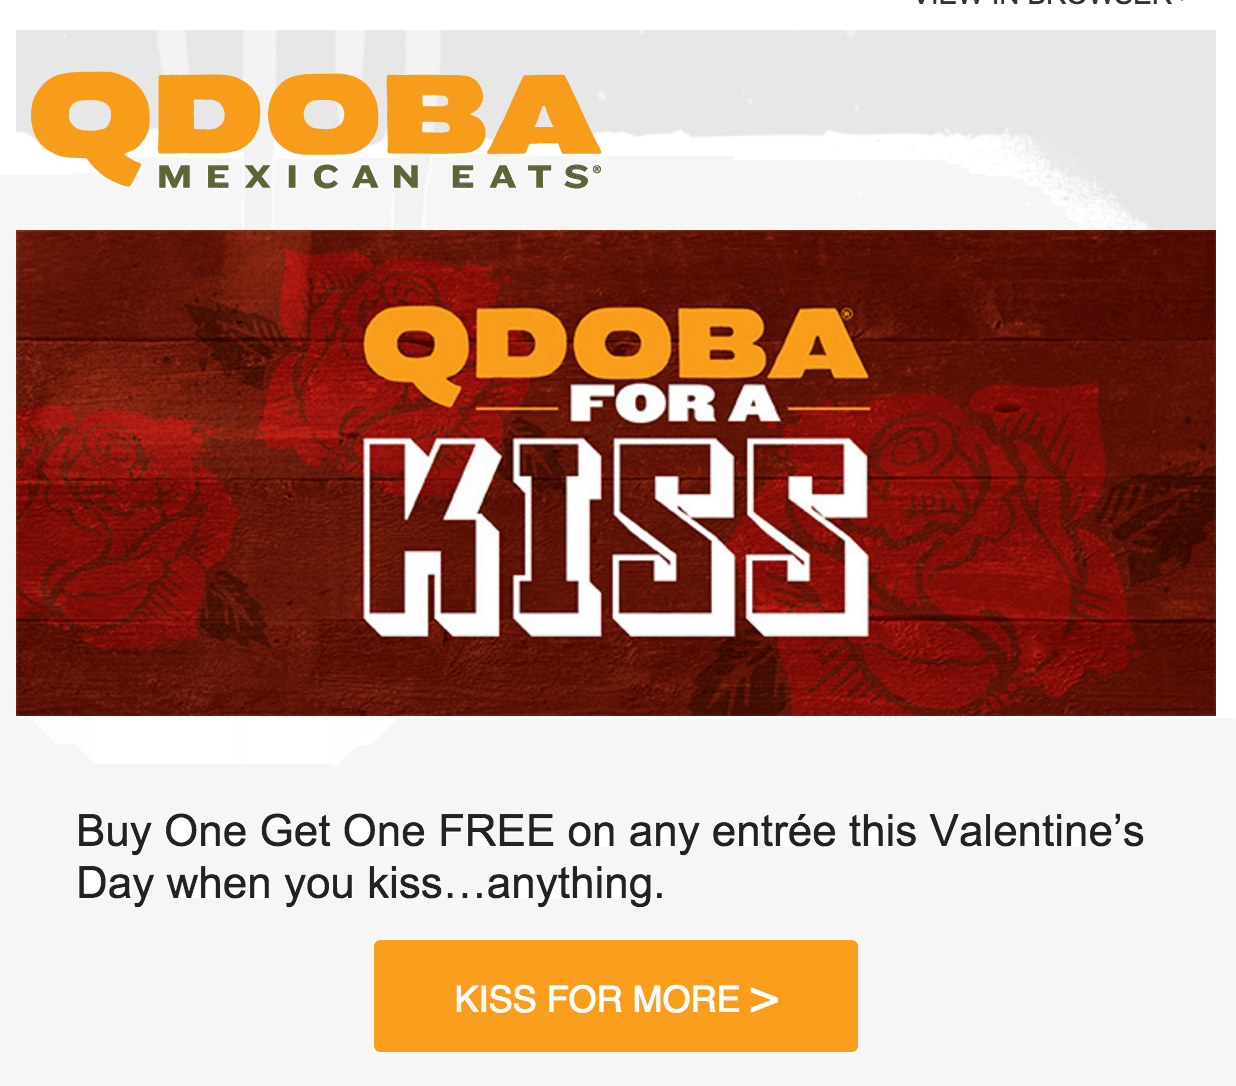 qdoba email example